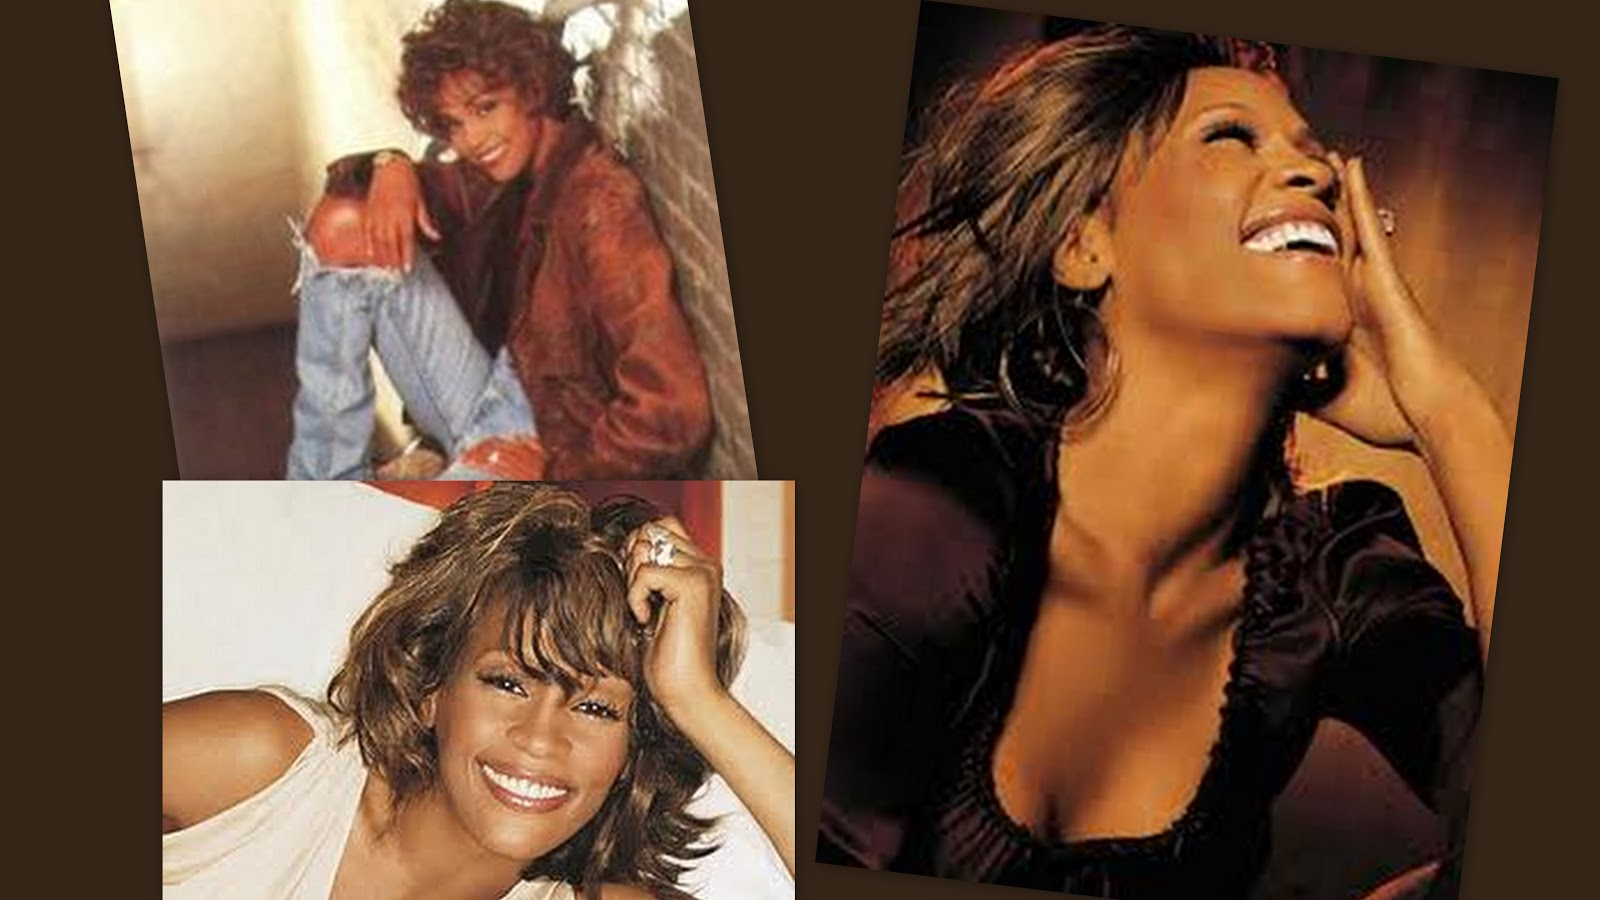 http://2.bp.blogspot.com/-YAdcgq6uWjA/T0B5rDH1pcI/AAAAAAAACEM/efDgUVTw-0Y/s1600/Whitney+Houston+collage.jpg